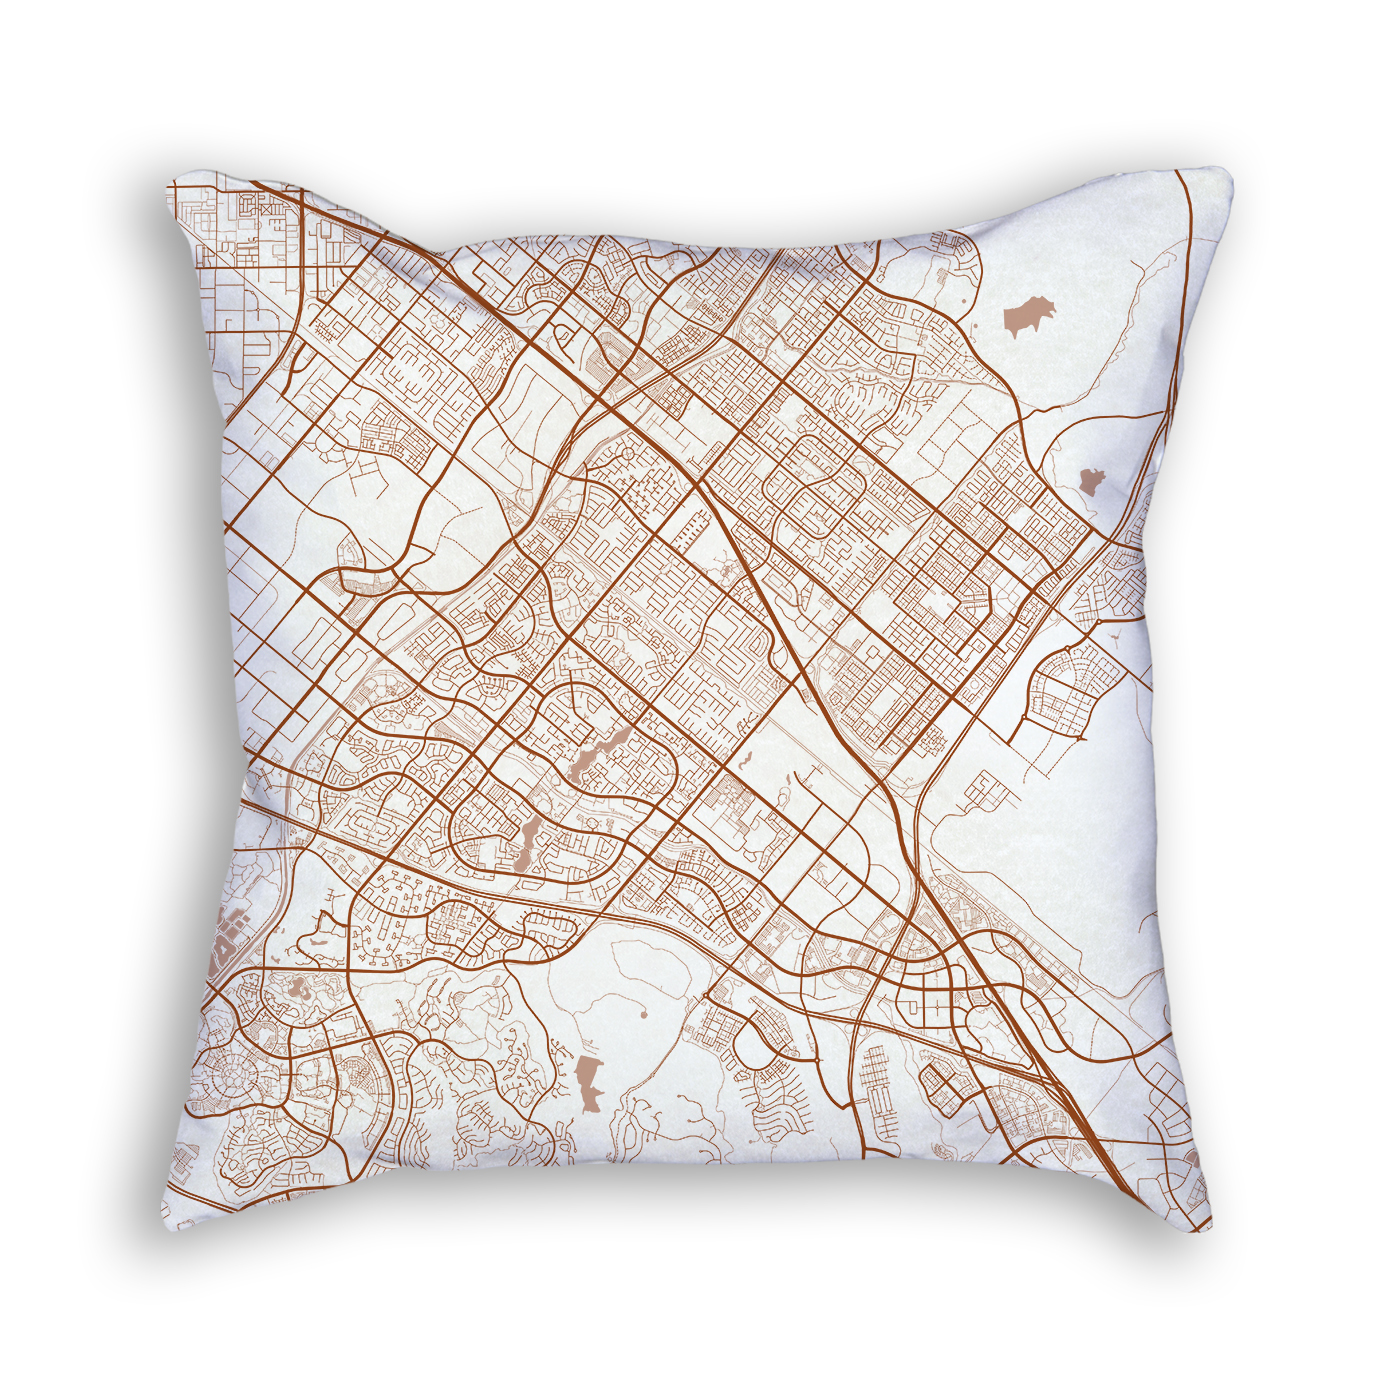 Irvine CA City Map Art Decorative Throw Pillow